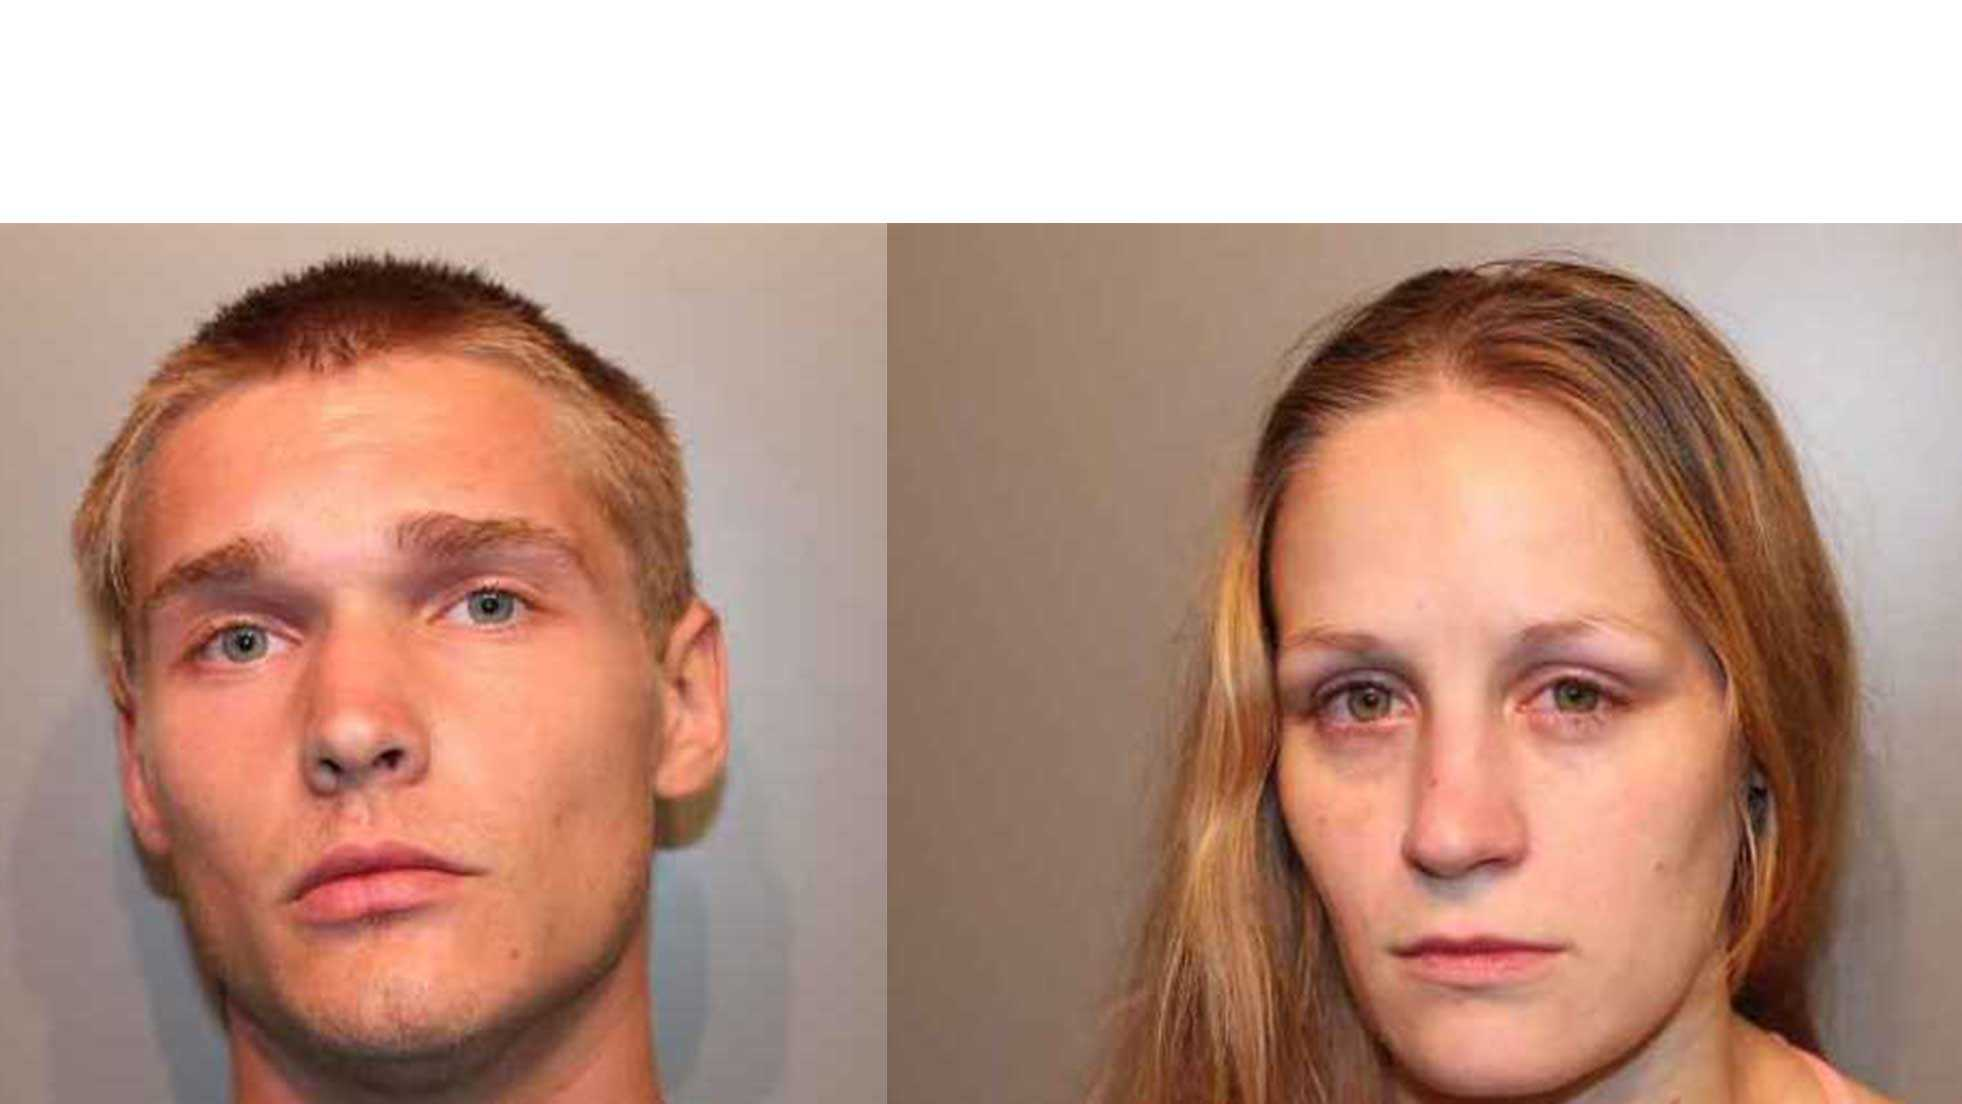 From left: Chance Fidler and Kandice Hadley (Aug. 21, 2014)